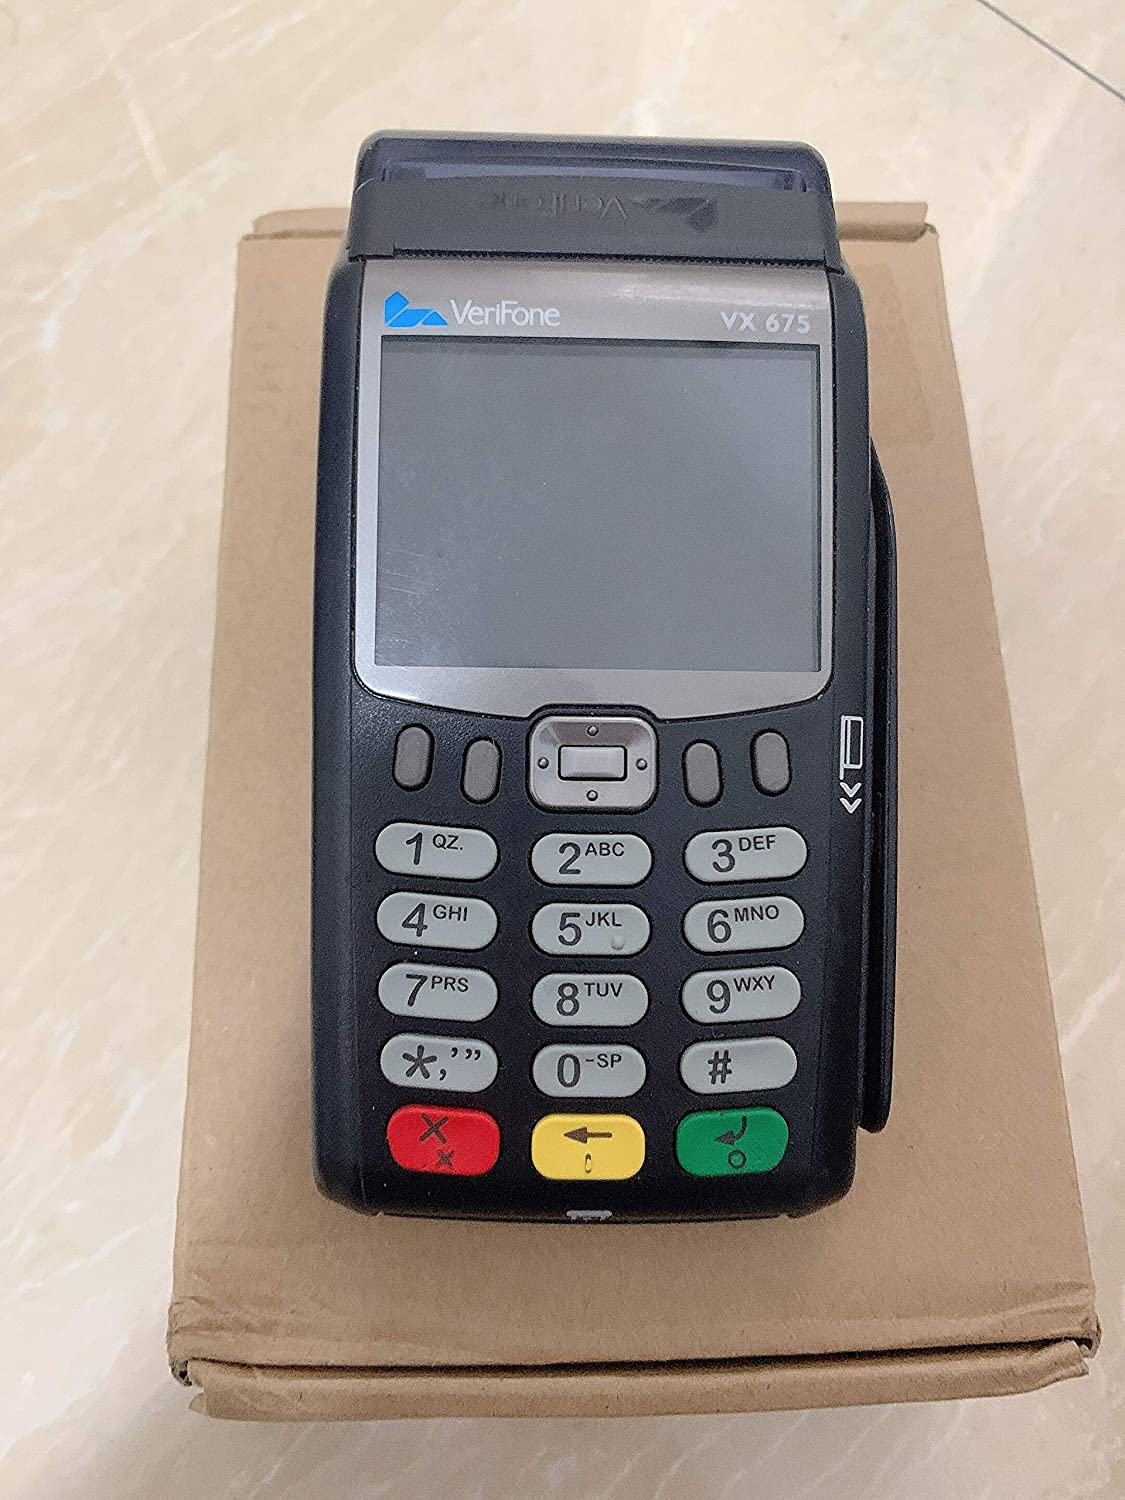 Amazon com: VeriFone Vx675 3G Wireless Equiment Unlocked